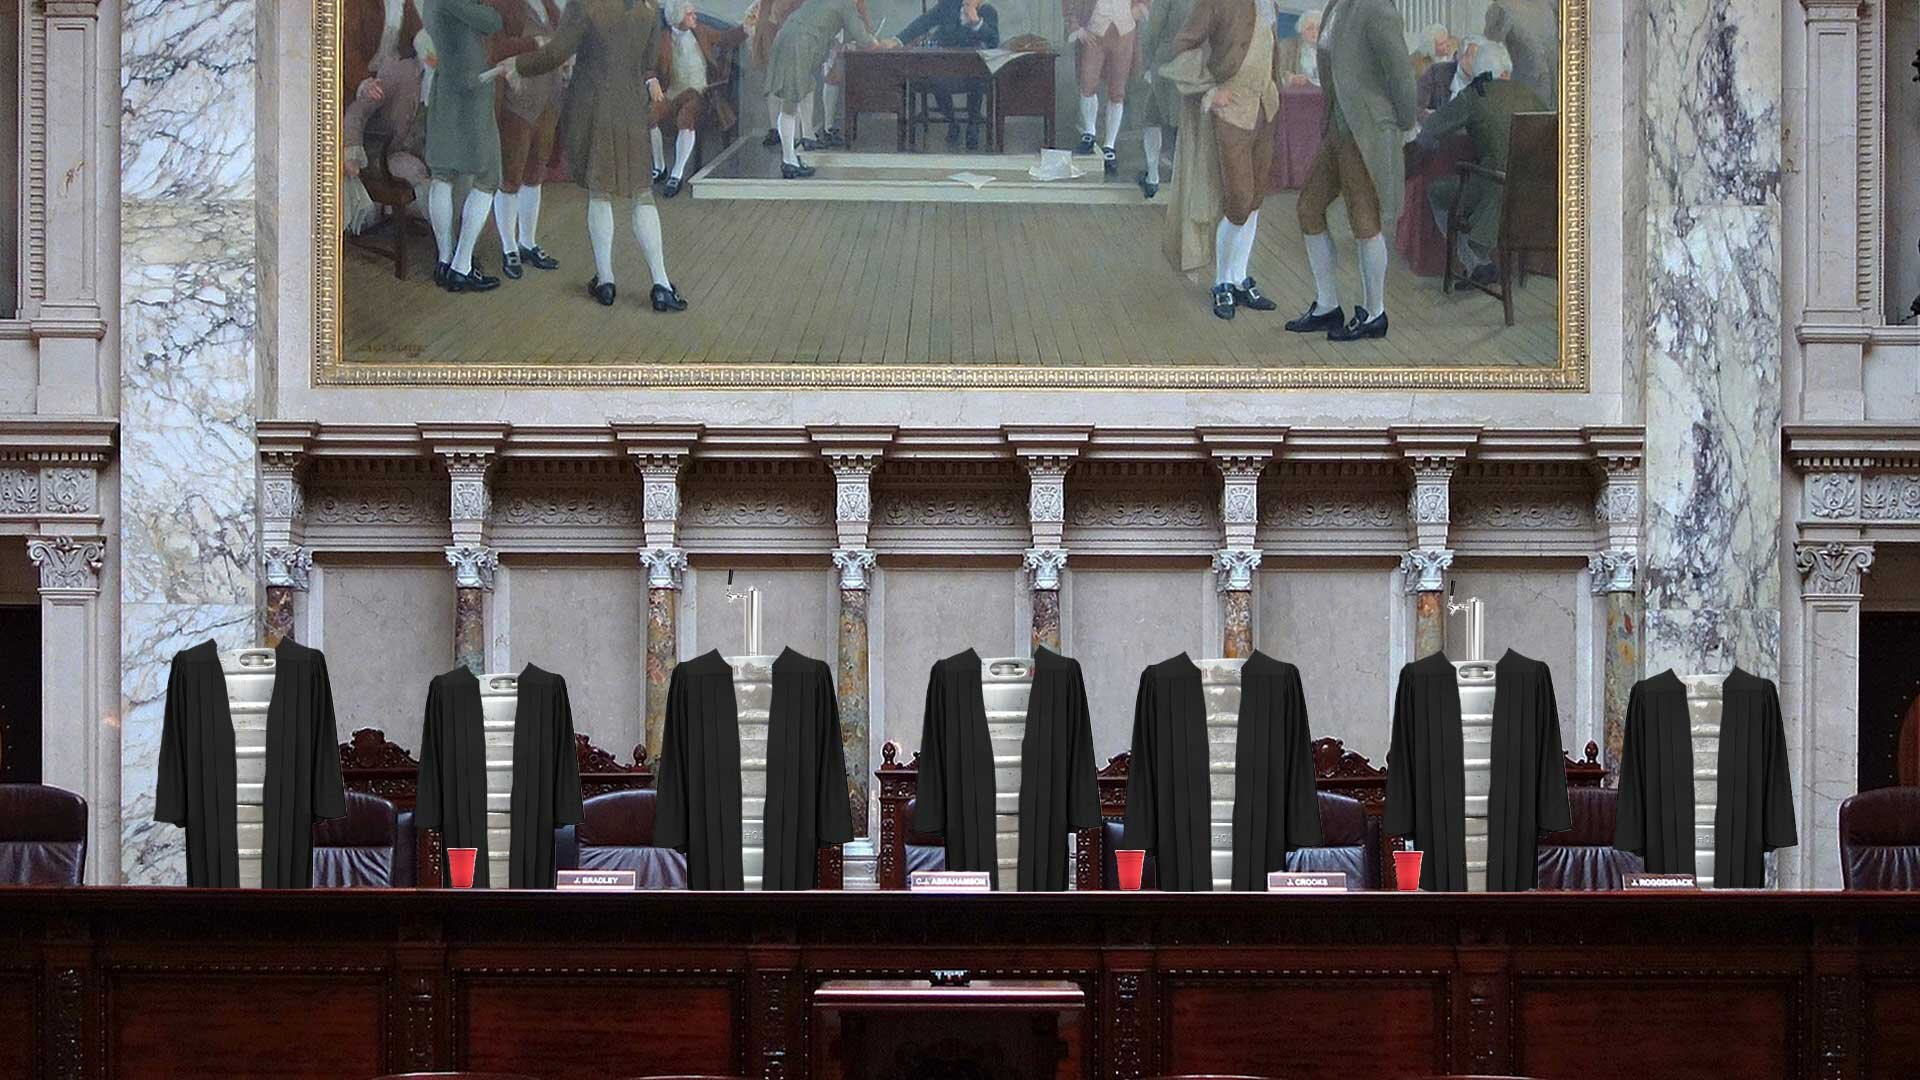 WI-Supreme-Court-Revealed-to-be-Seven-Kegs-in-Robes.jpg